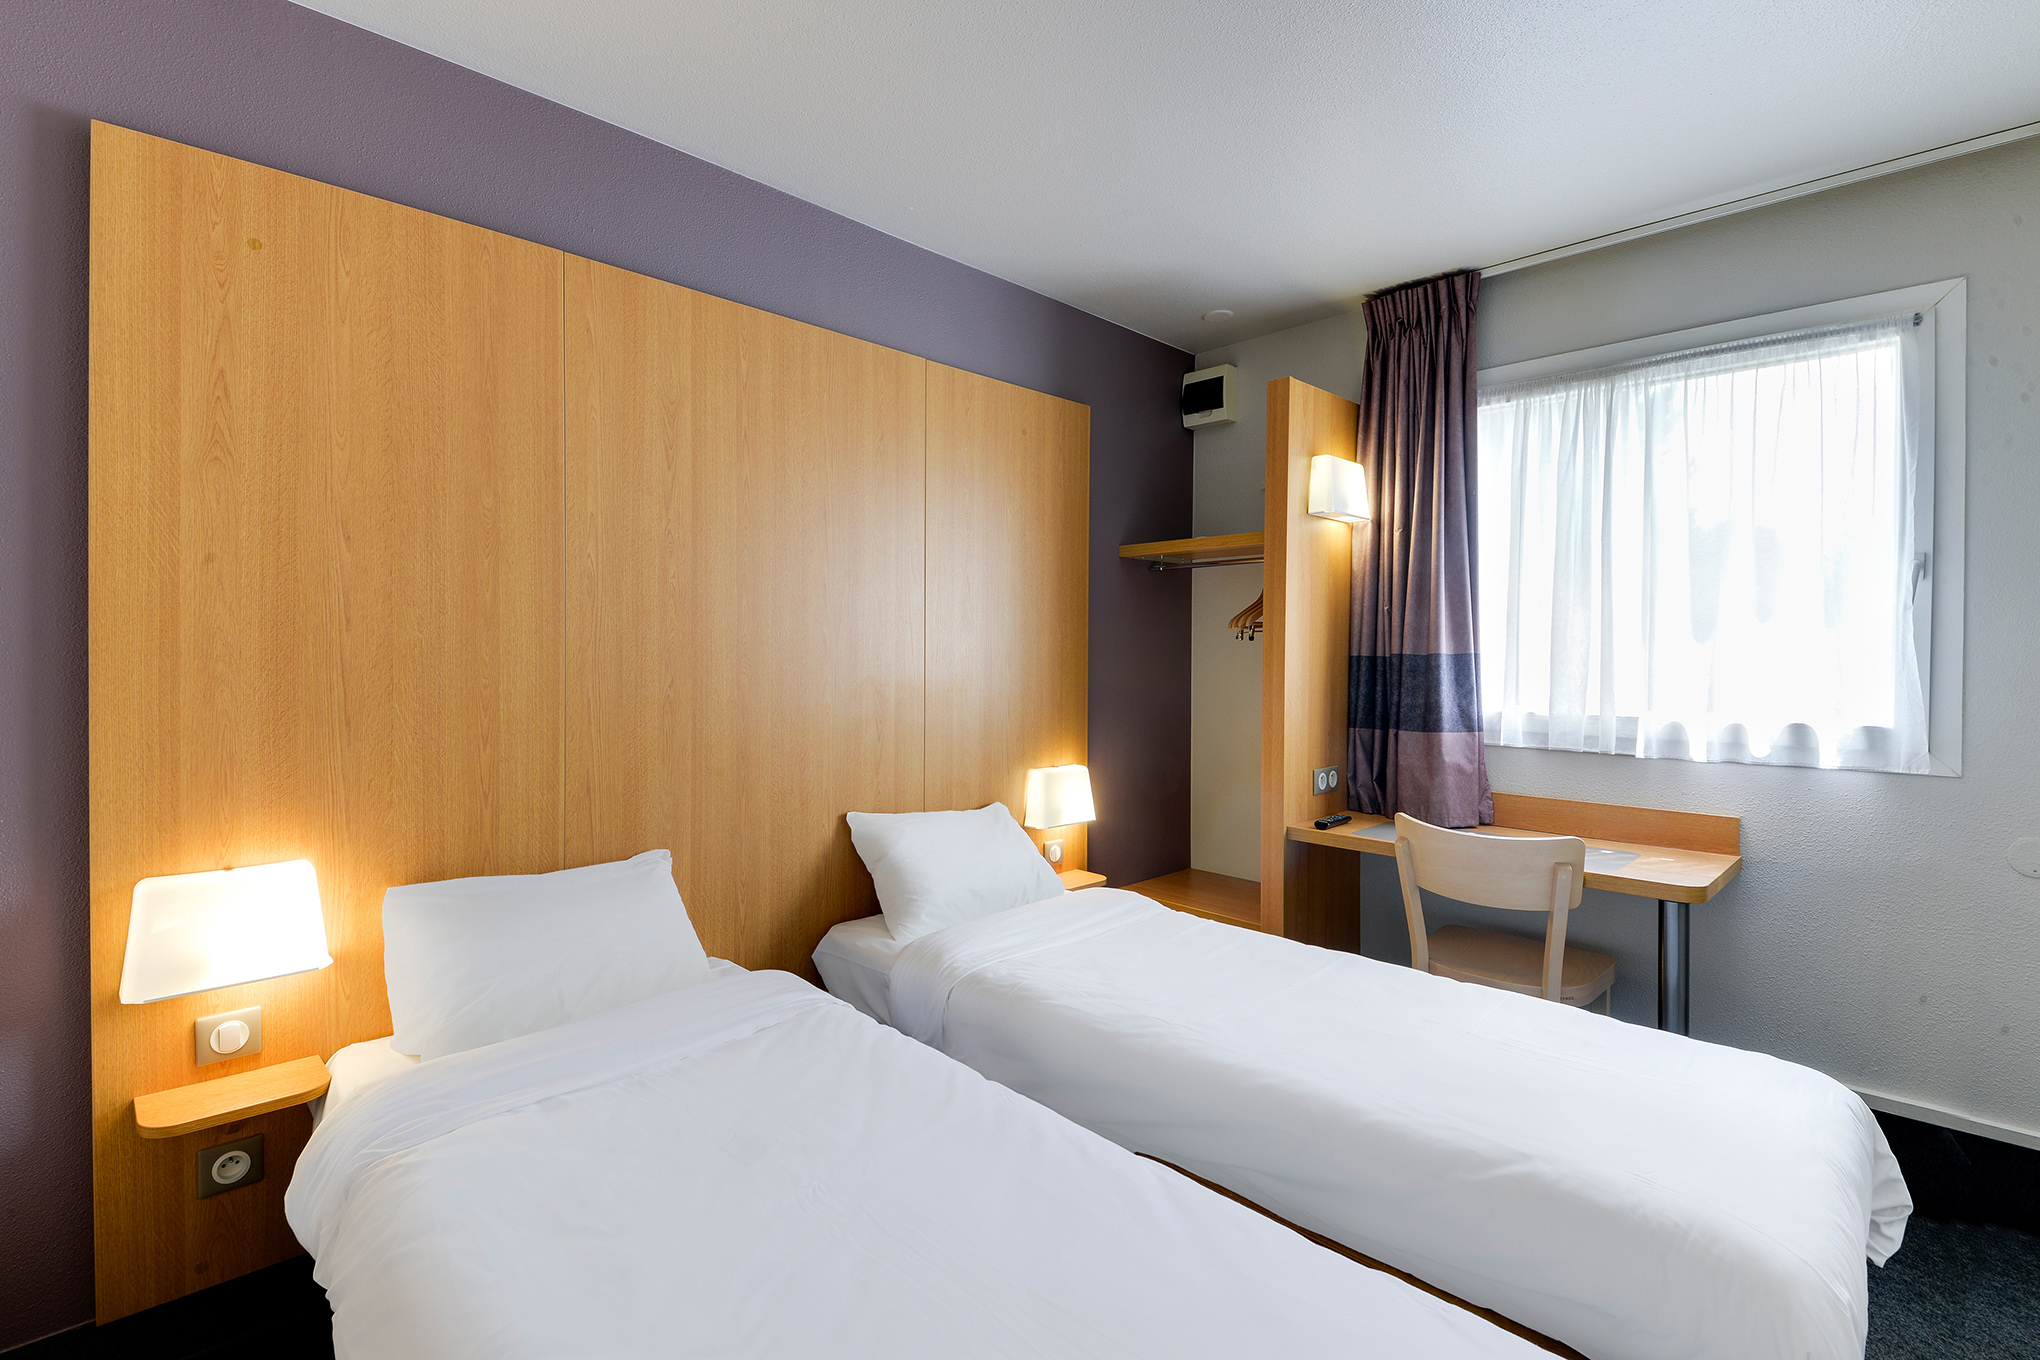 hotel b and b nantes b b hotel nantes centre updated 2017 reviews price comparison france. Black Bedroom Furniture Sets. Home Design Ideas